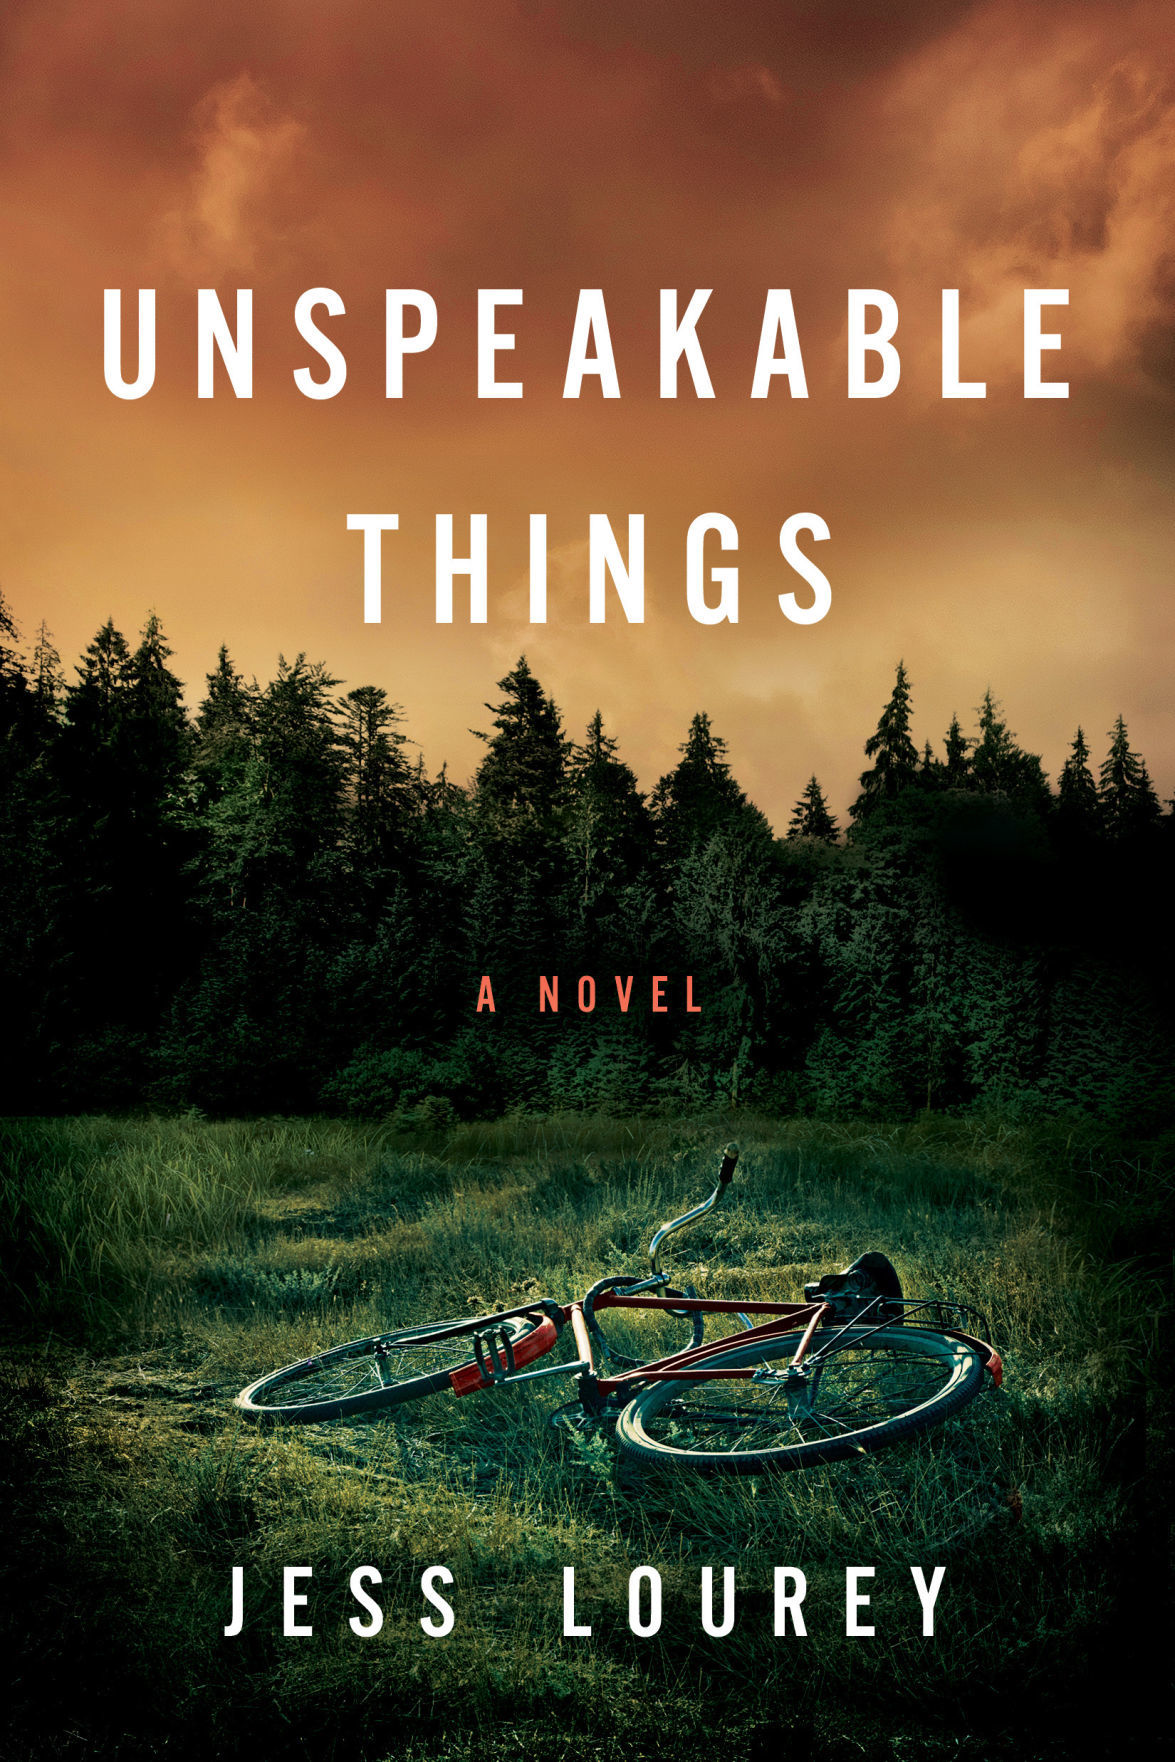 Unspeakable Things book cover